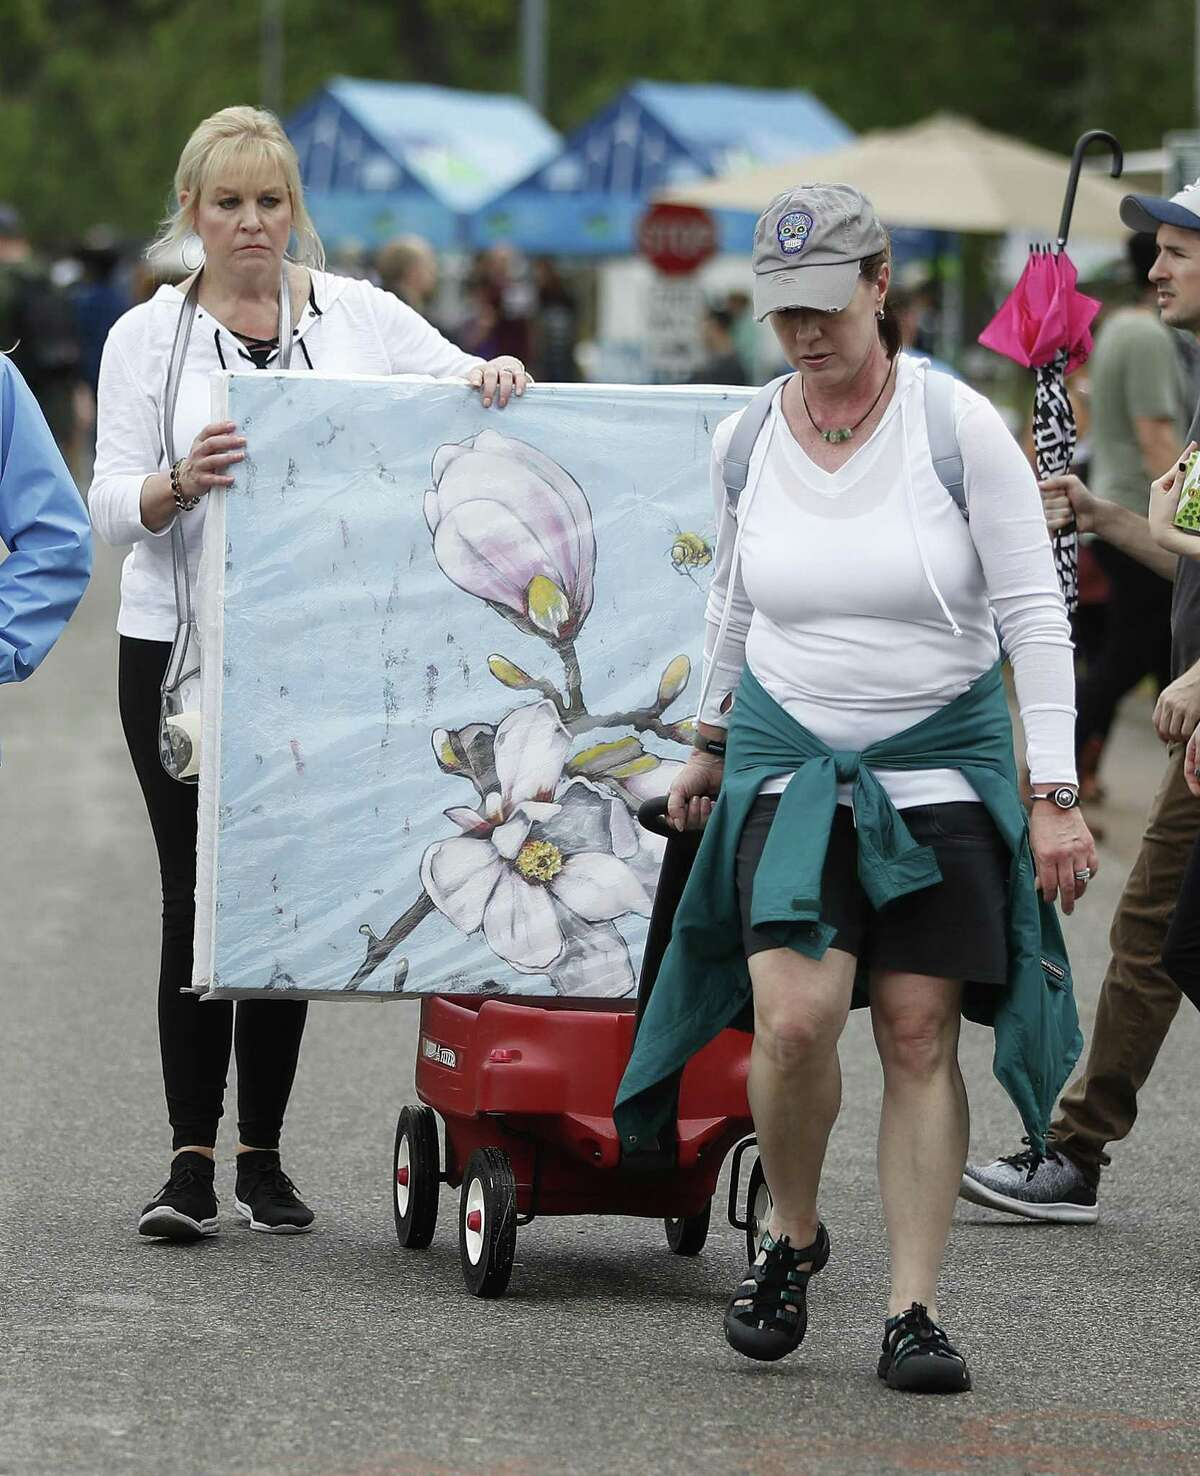 Laurie Pleasant carts out her art with the help of her friend Cindy Cameron during the Bayou City Art Festival in Memorial Park, Saturday, March 30, 2019, in Houston. In it's 48th year, there are more than 300 artists showcasing their work, and as one of the nation's premier outdoor fine art events, the three-day festival ends Sunday, and will be open from 10am-6pm. The festival benefits local nonprofit partners and features live music, local food vendors and food trucks, beverages, entertainment, a Children's Creative Zone and more.